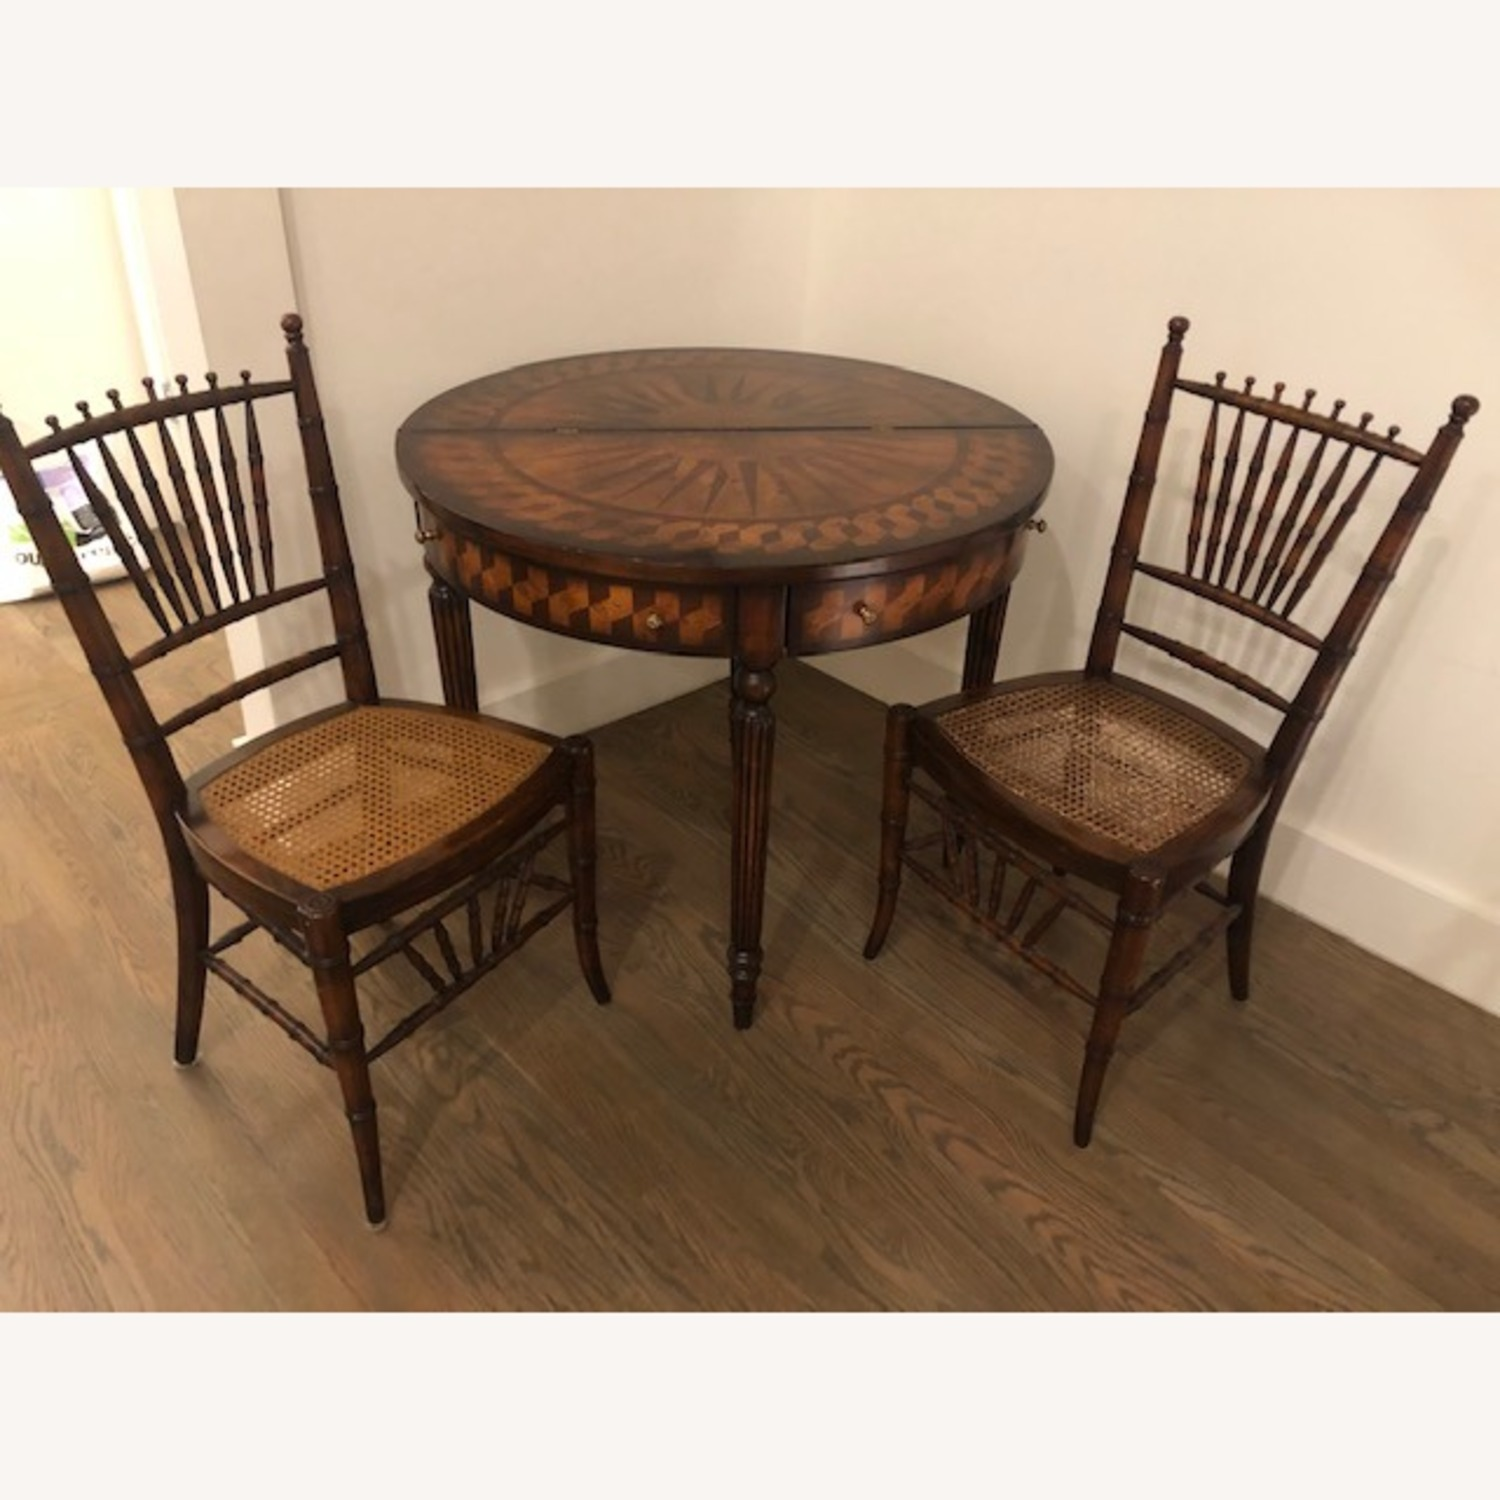 CISCO Brothers Demi-lune Table - image-5